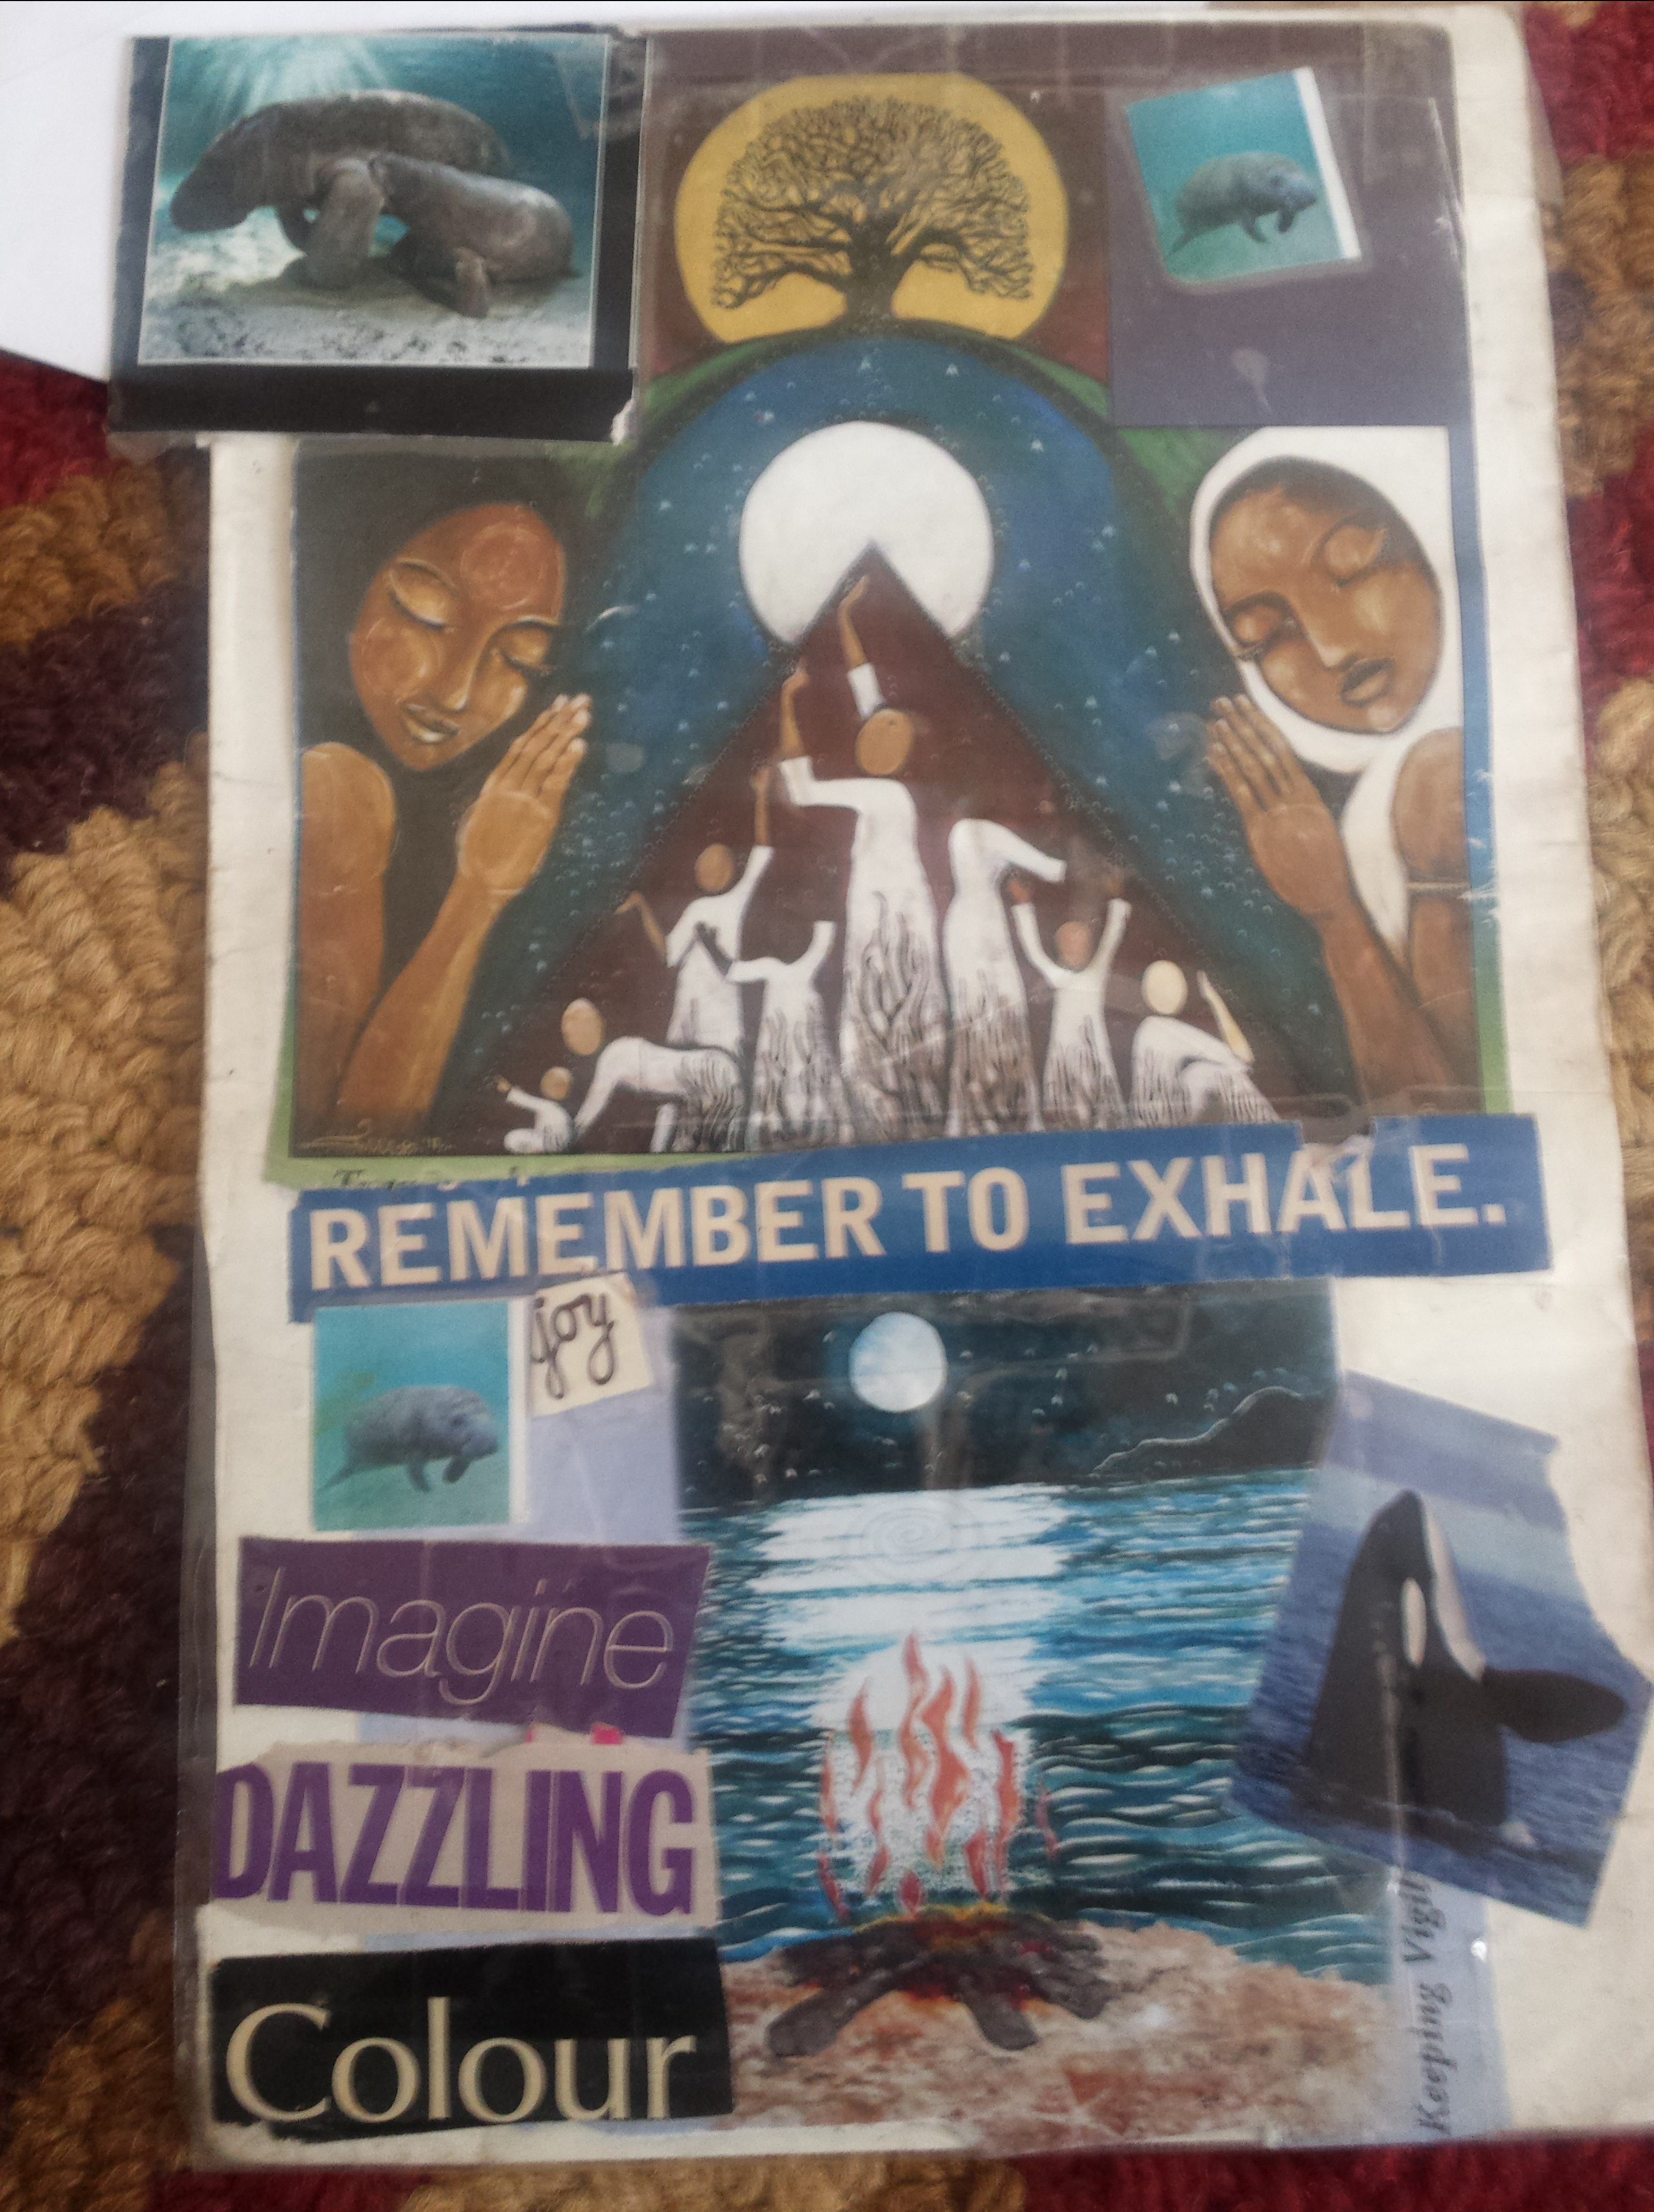 A collage of Afro centric femmes, Manatees, Orcas and the words Exhale, Imagine, Dazzling and Colour.